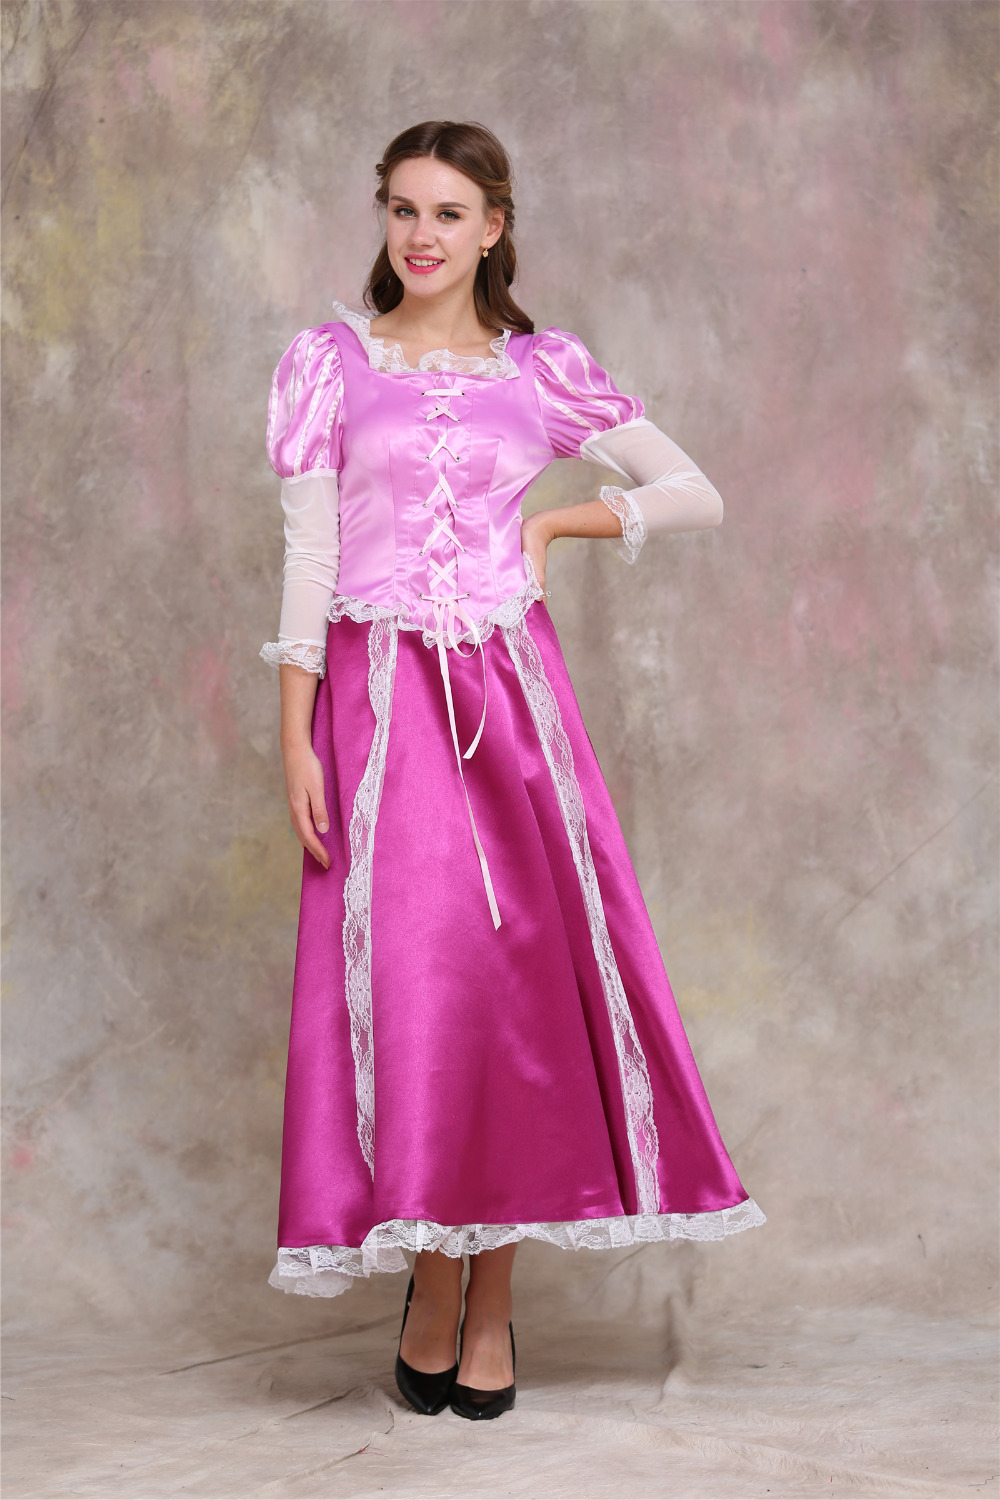 Tangled Rapunzel Princess Dress Costume Adult Rapunzel Dress Gown Halloween Carnival Birthday Cosplay Costume